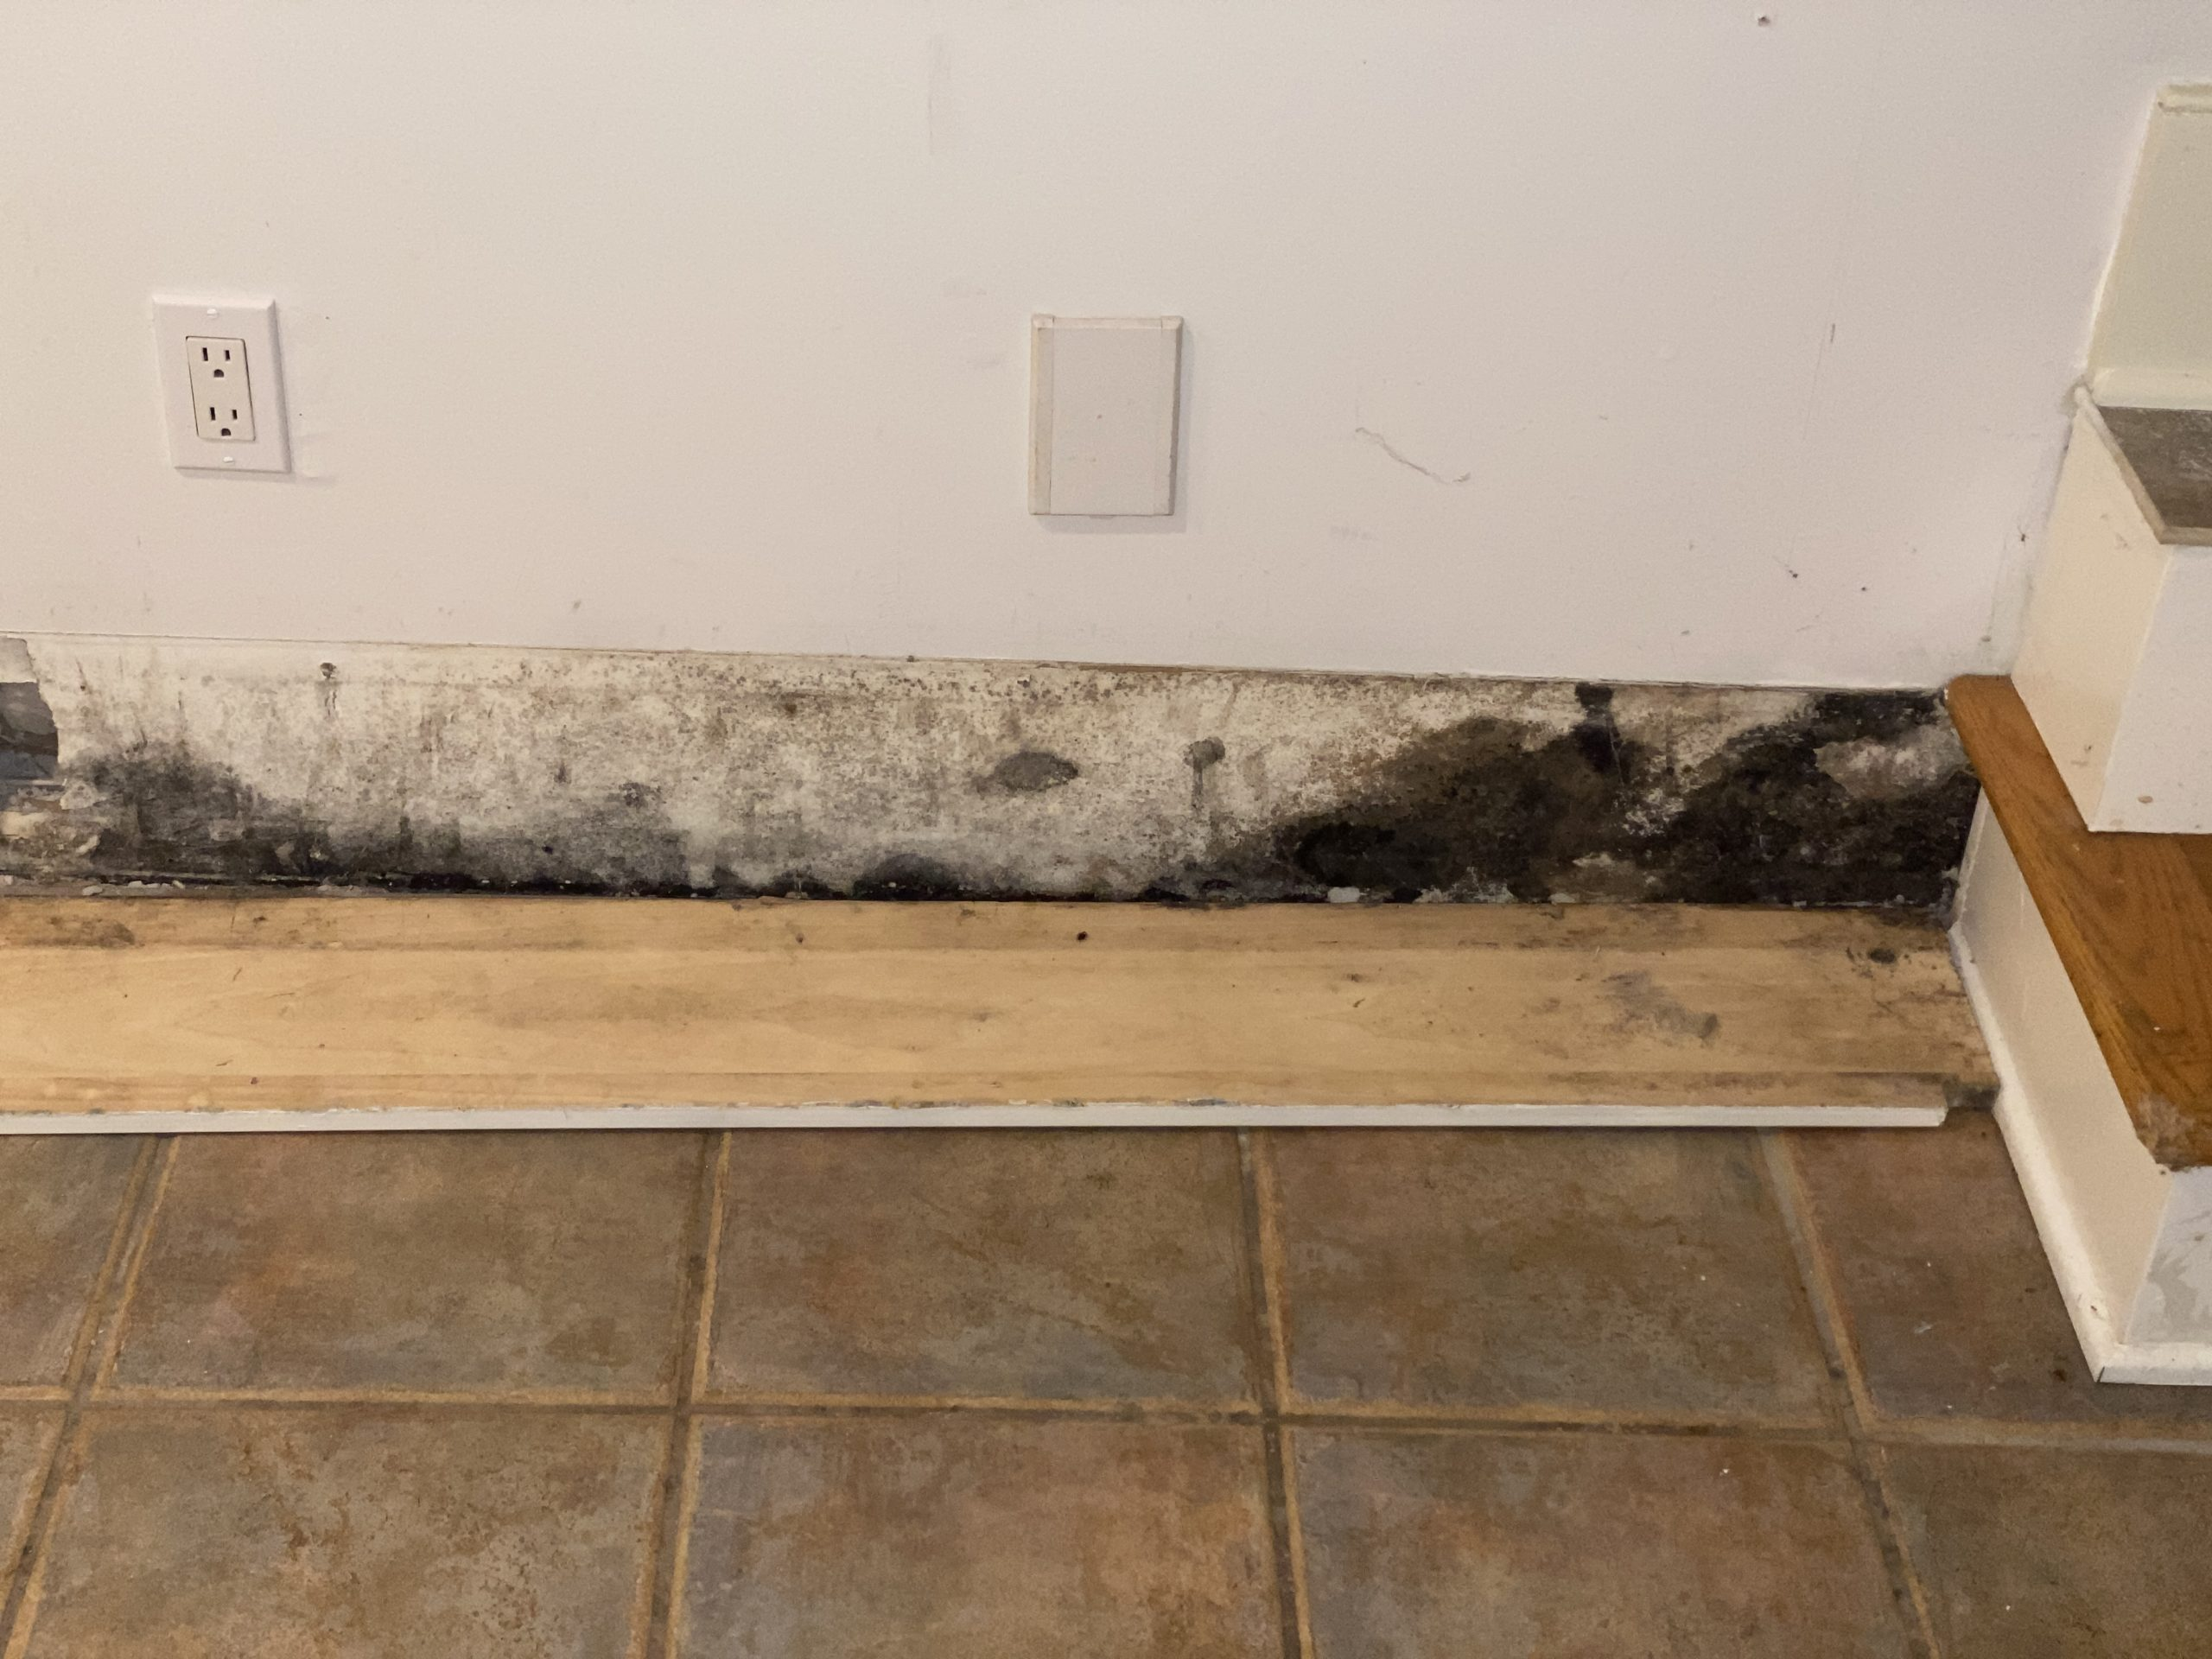 The common denominator in any mold infestation is moisture, according to Brad C. Slack, the founder of Mold Pro, Inc.